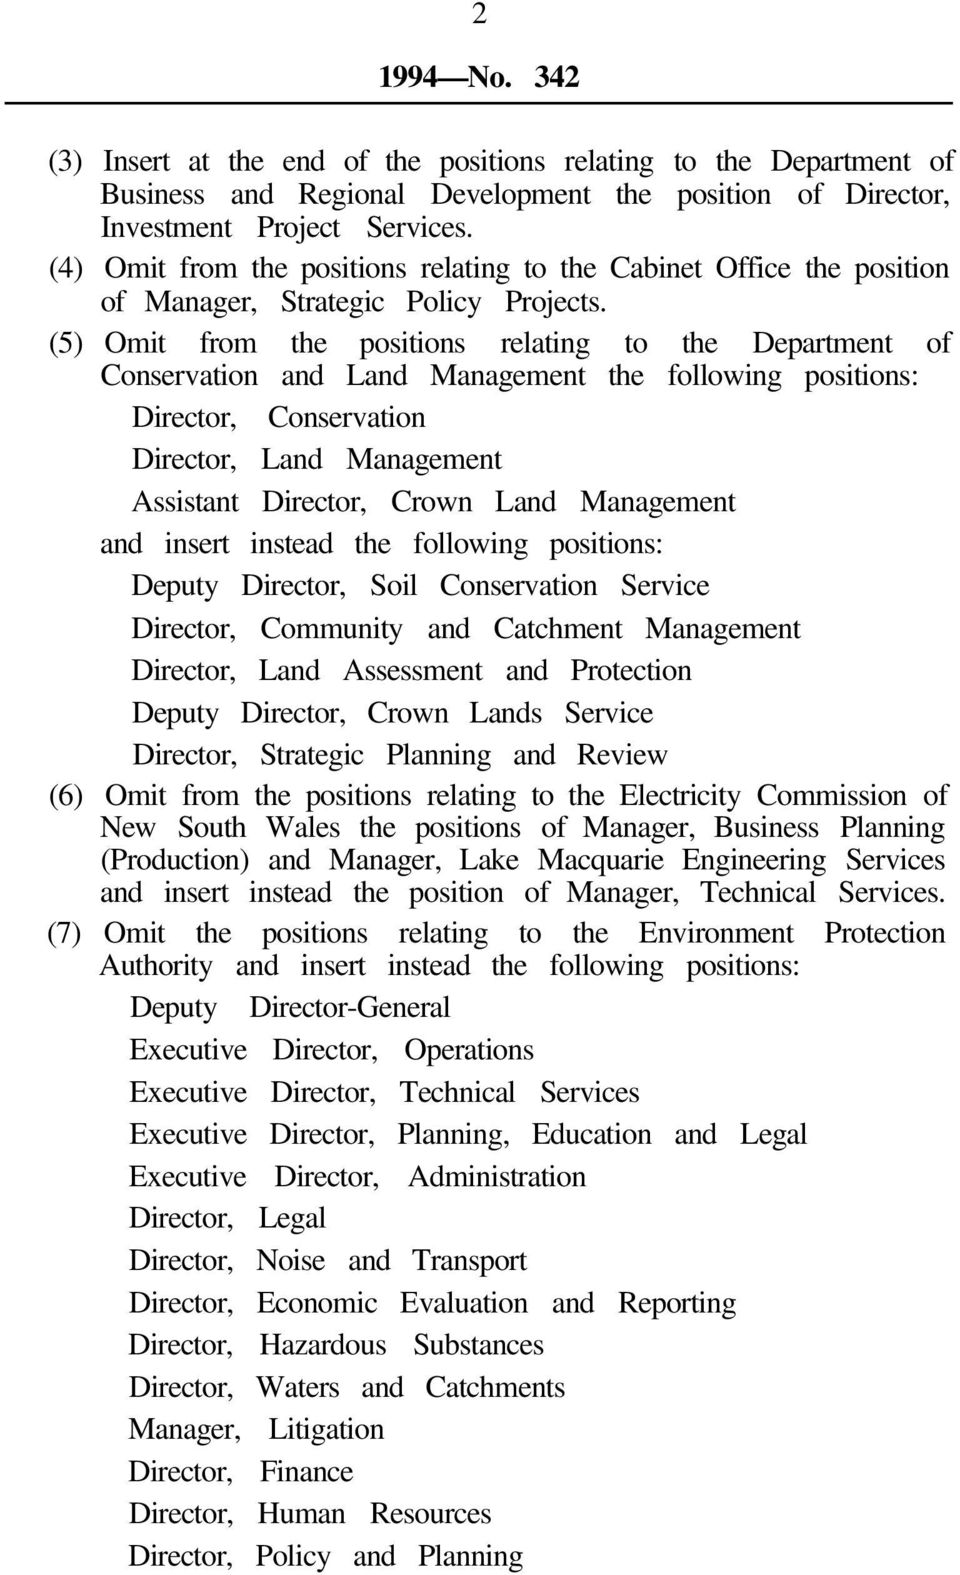 (5) Omit from the positions relating to the Department of Conservation and Land Management the Director, Conservation Director, Land Management Assistant Director, Crown Land Management Deputy